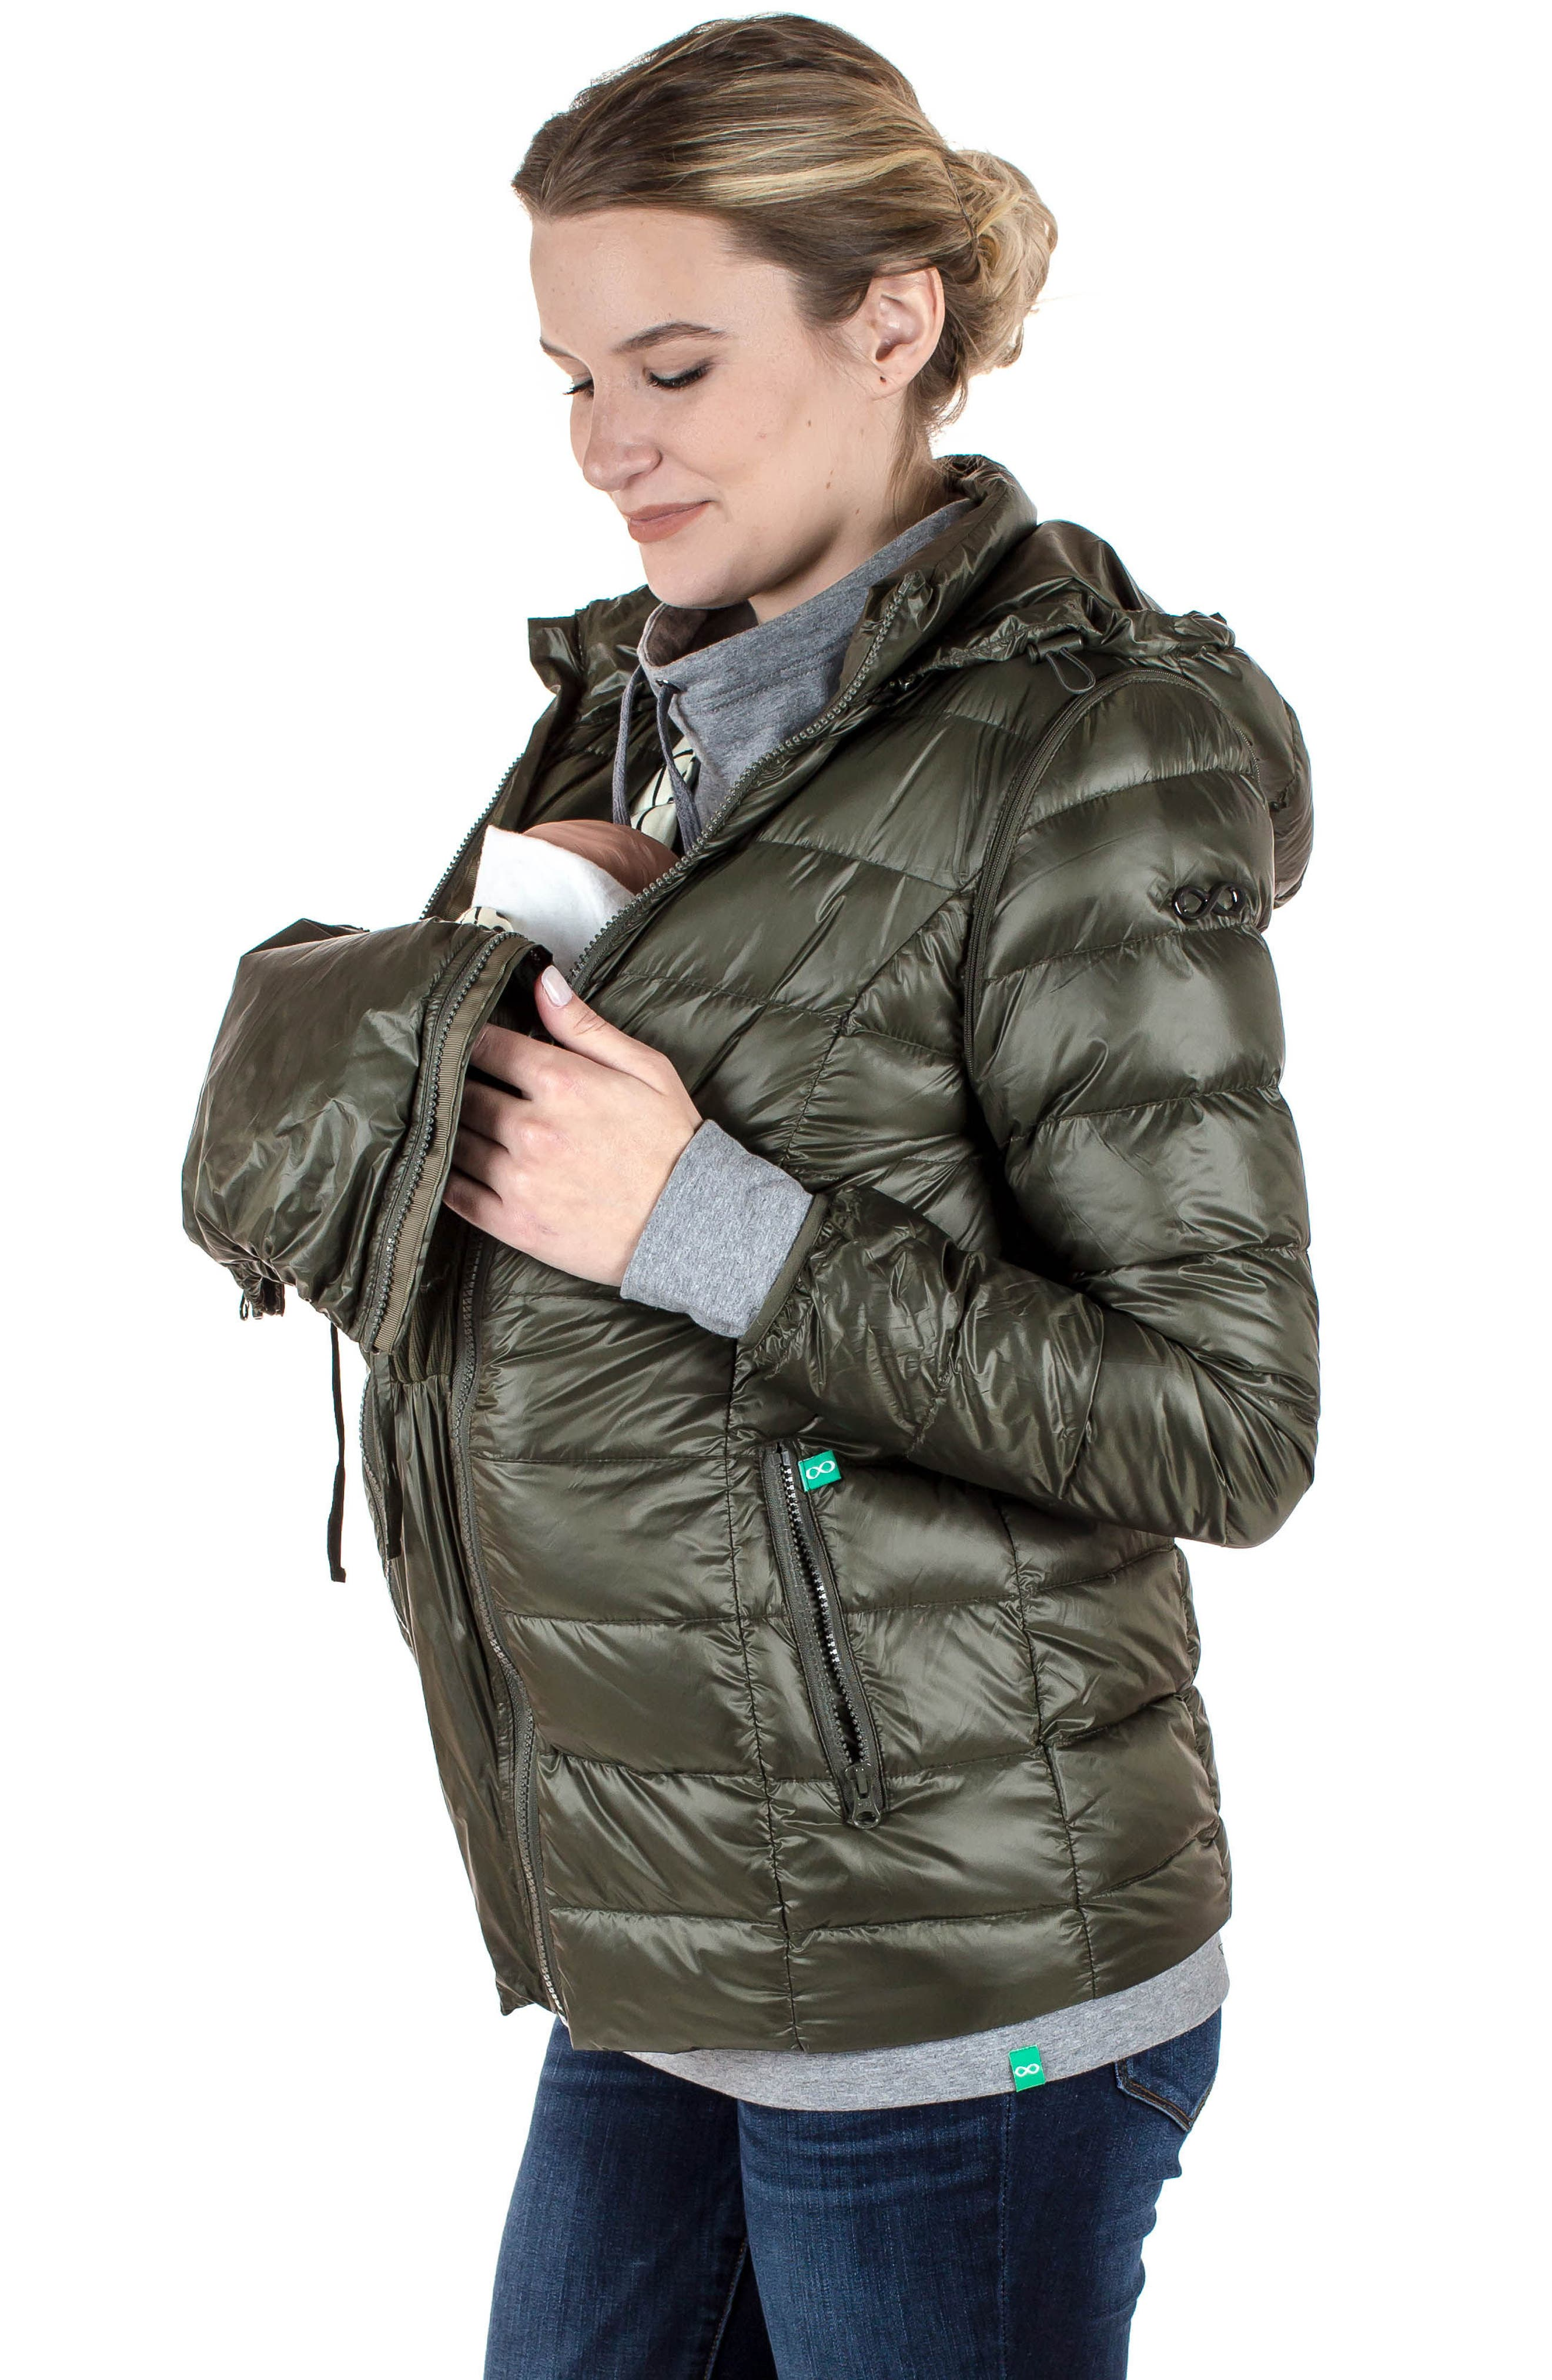 Lightweight Puffer Convertible 3-in-1 Maternity Jacket,                             Alternate thumbnail 14, color,                             KHAKI GREEN